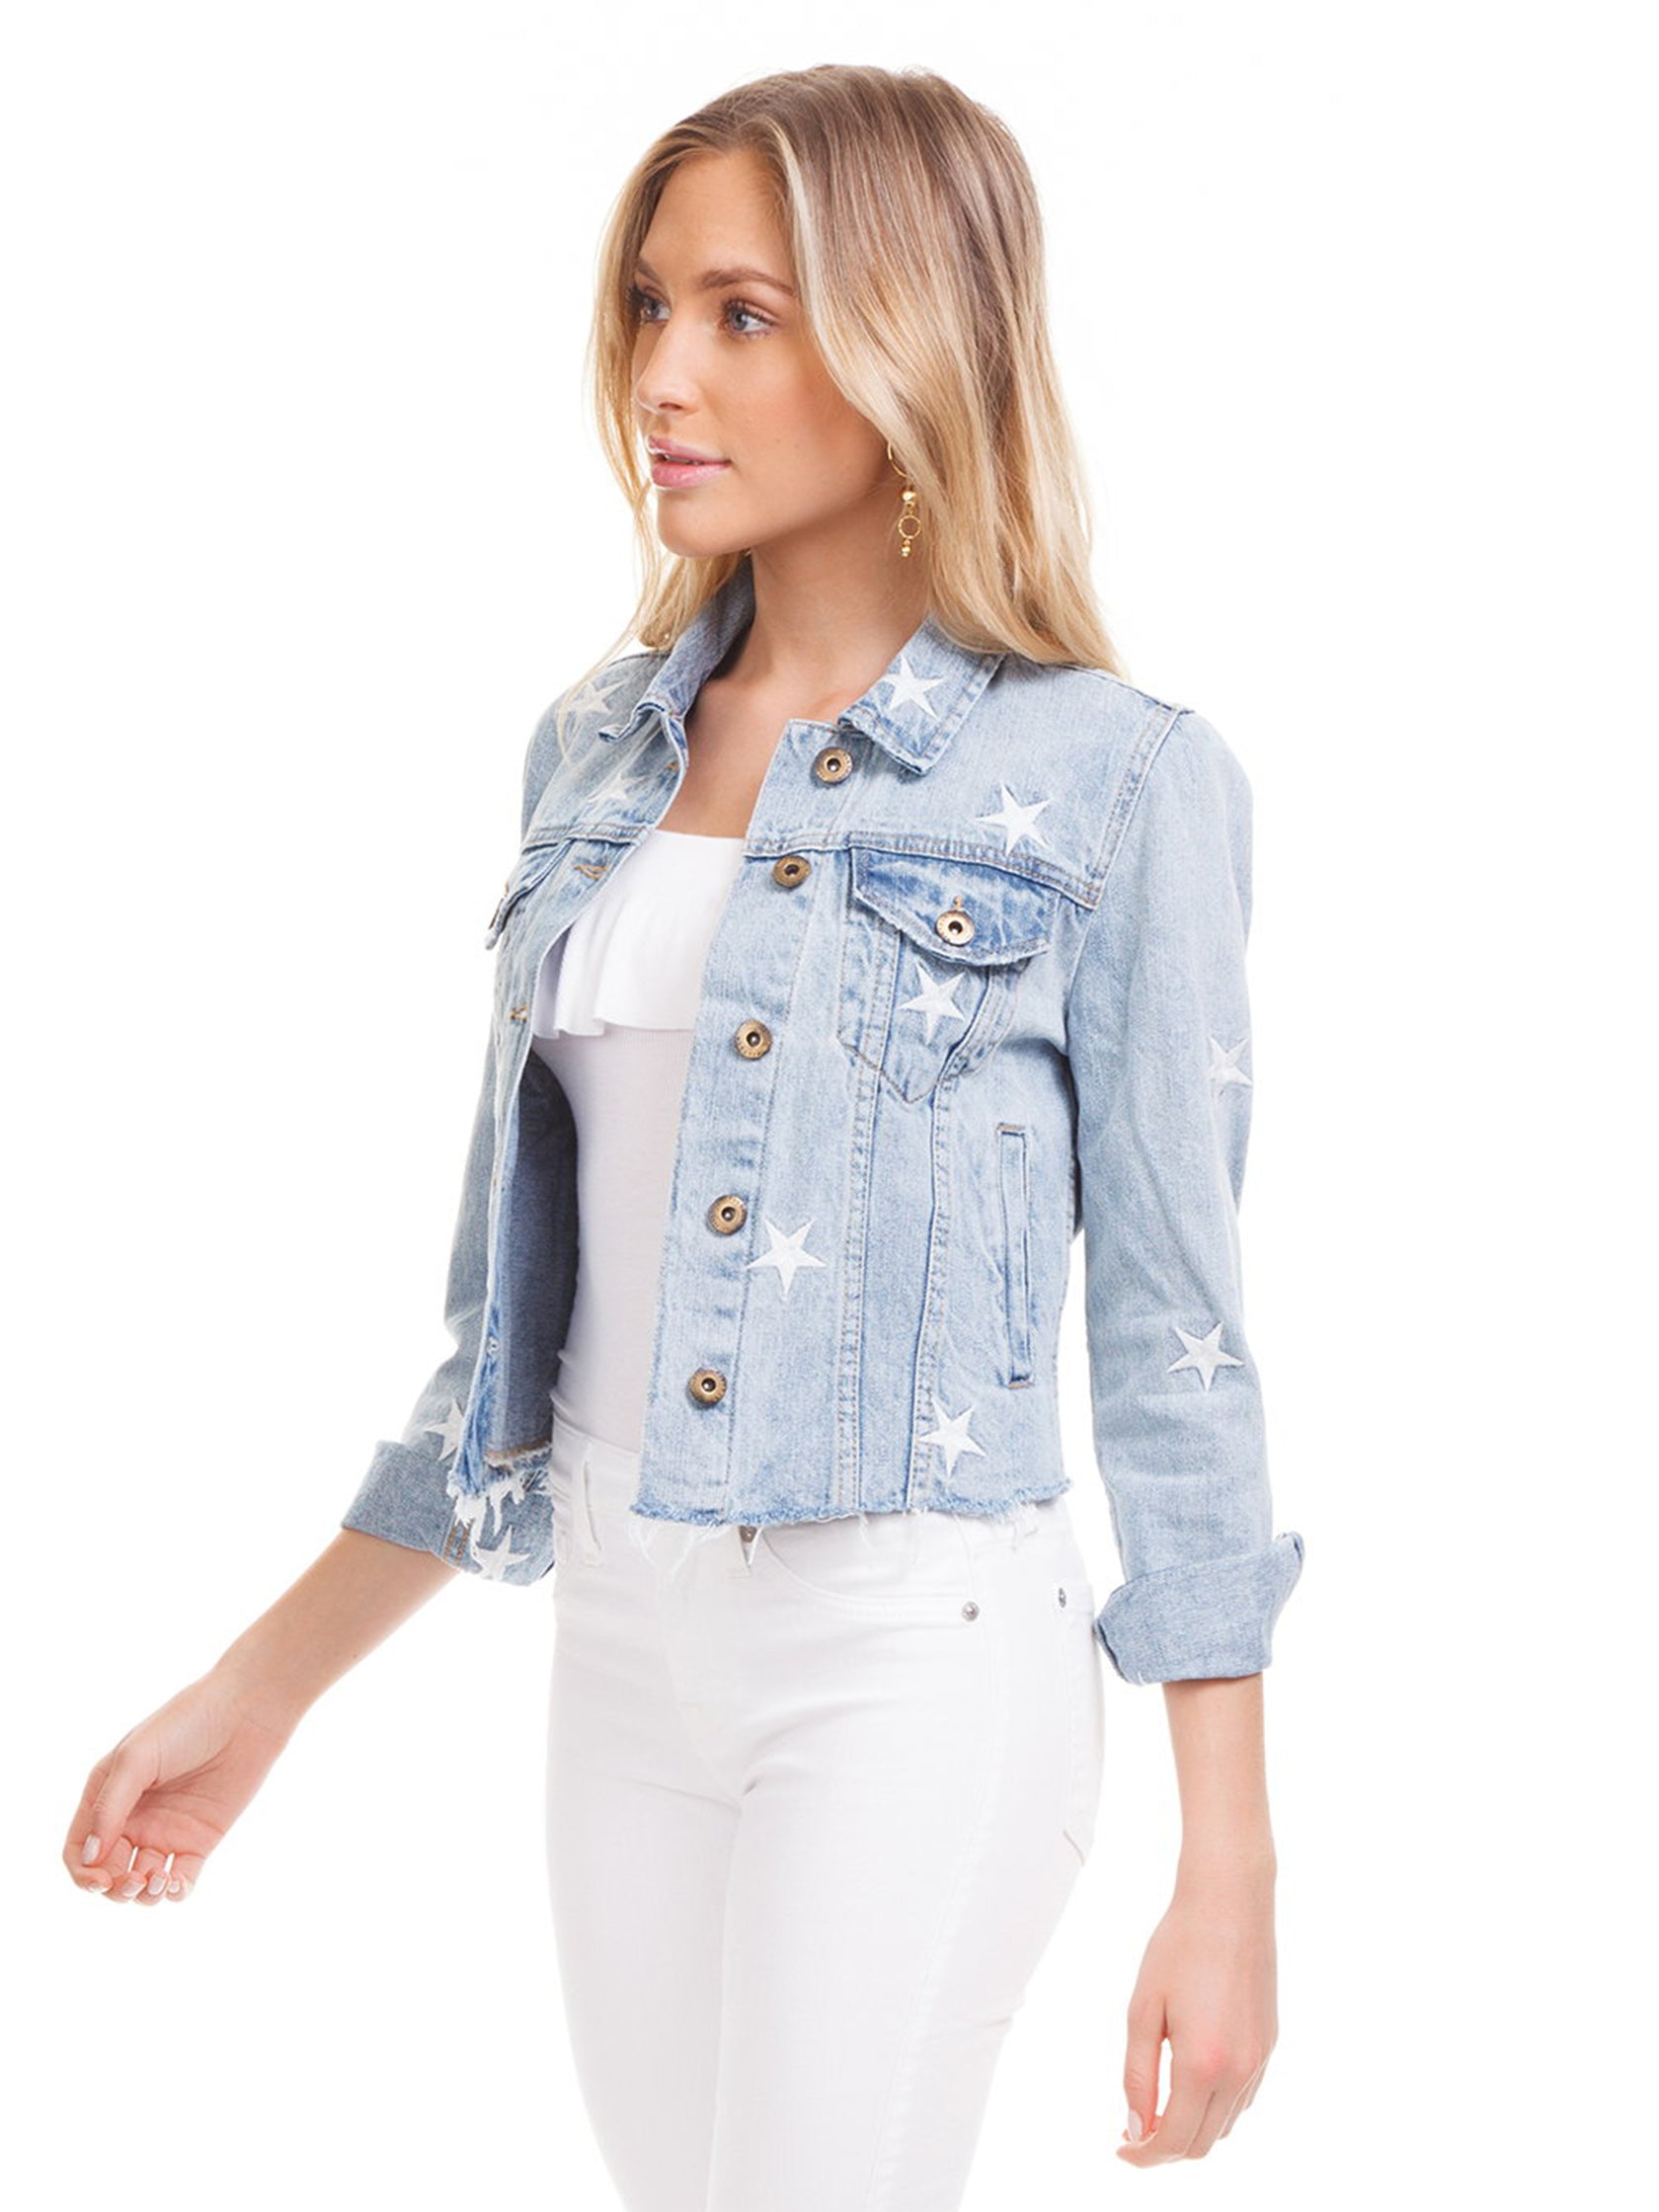 Women outfit in a jacket rental from PISTOLA called Heavenly Body Embroidered Light Wash Denim Jacket